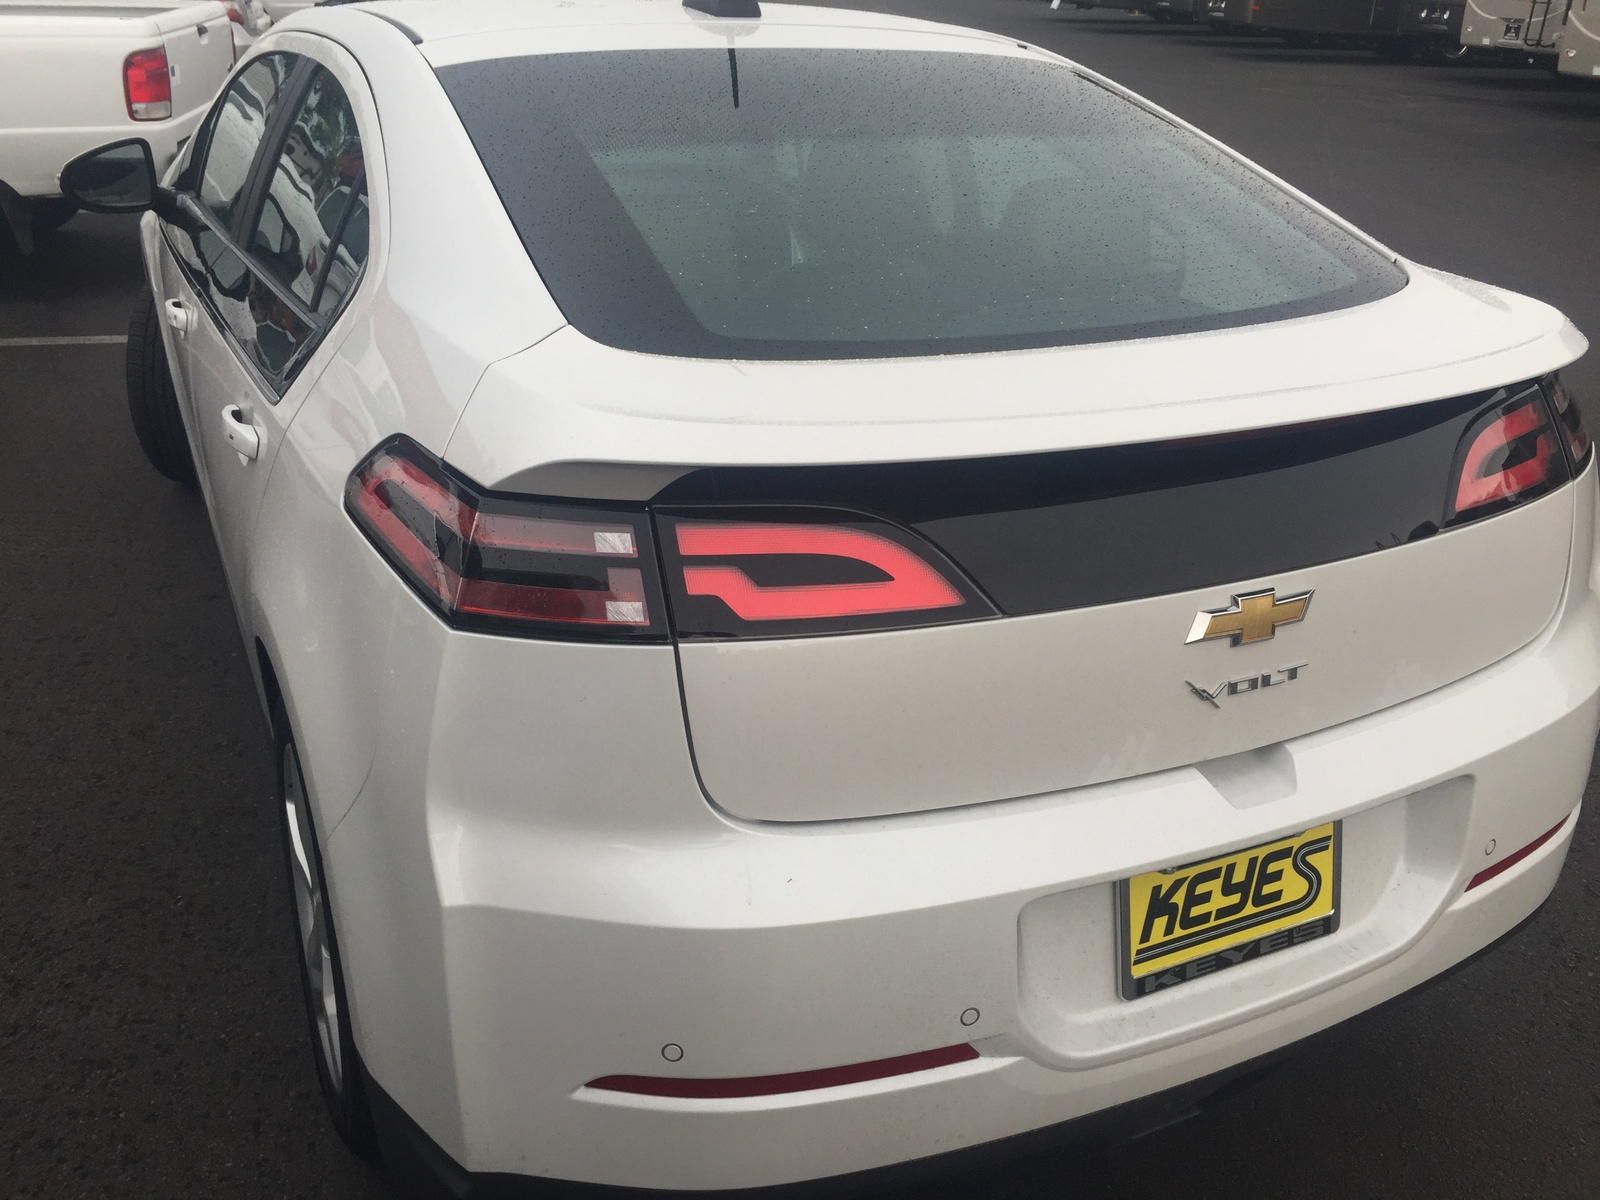 New 2015 Chevrolet Volt For Sale - CarGurus